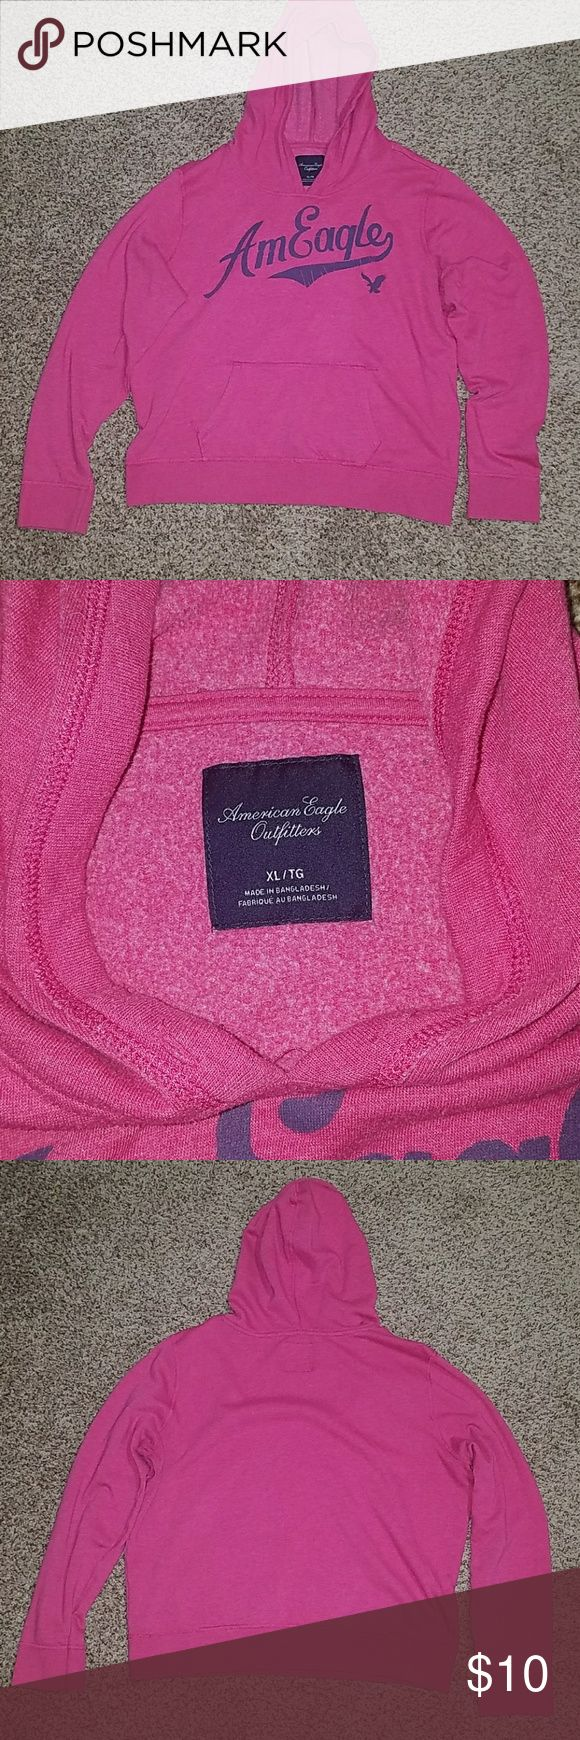 American Eagle pink womens hoodie EUC pink hoodie with blue writing on the front.  Very soft and comfy.  Has hand pouch in the front as well. American Eagle Outfitters Tops Sweatshirts & Hoodies